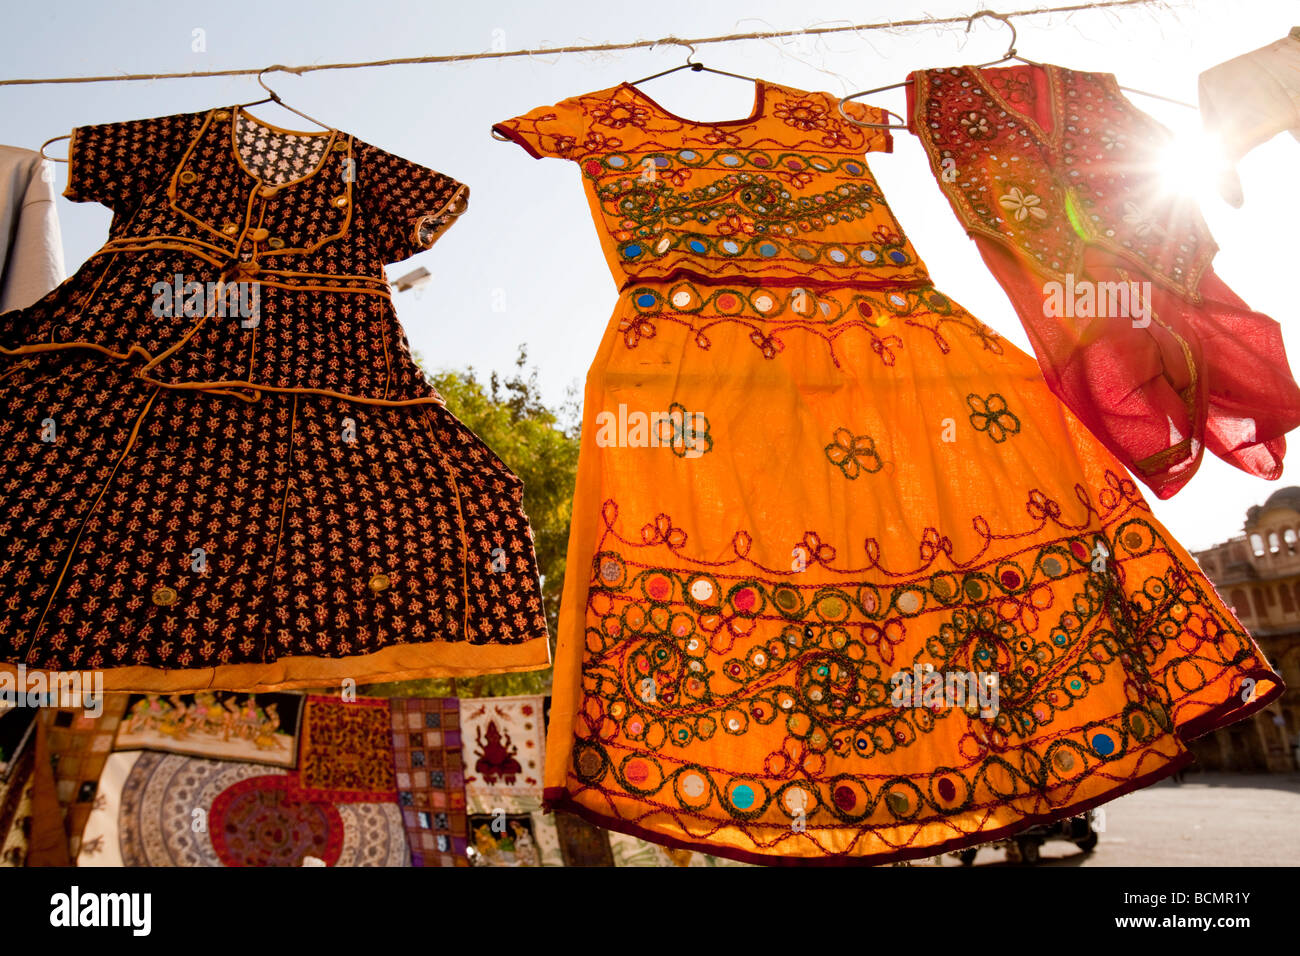 Dresses For Sale In Sadar Market Jodhpur Rajasthan India Stock Foto